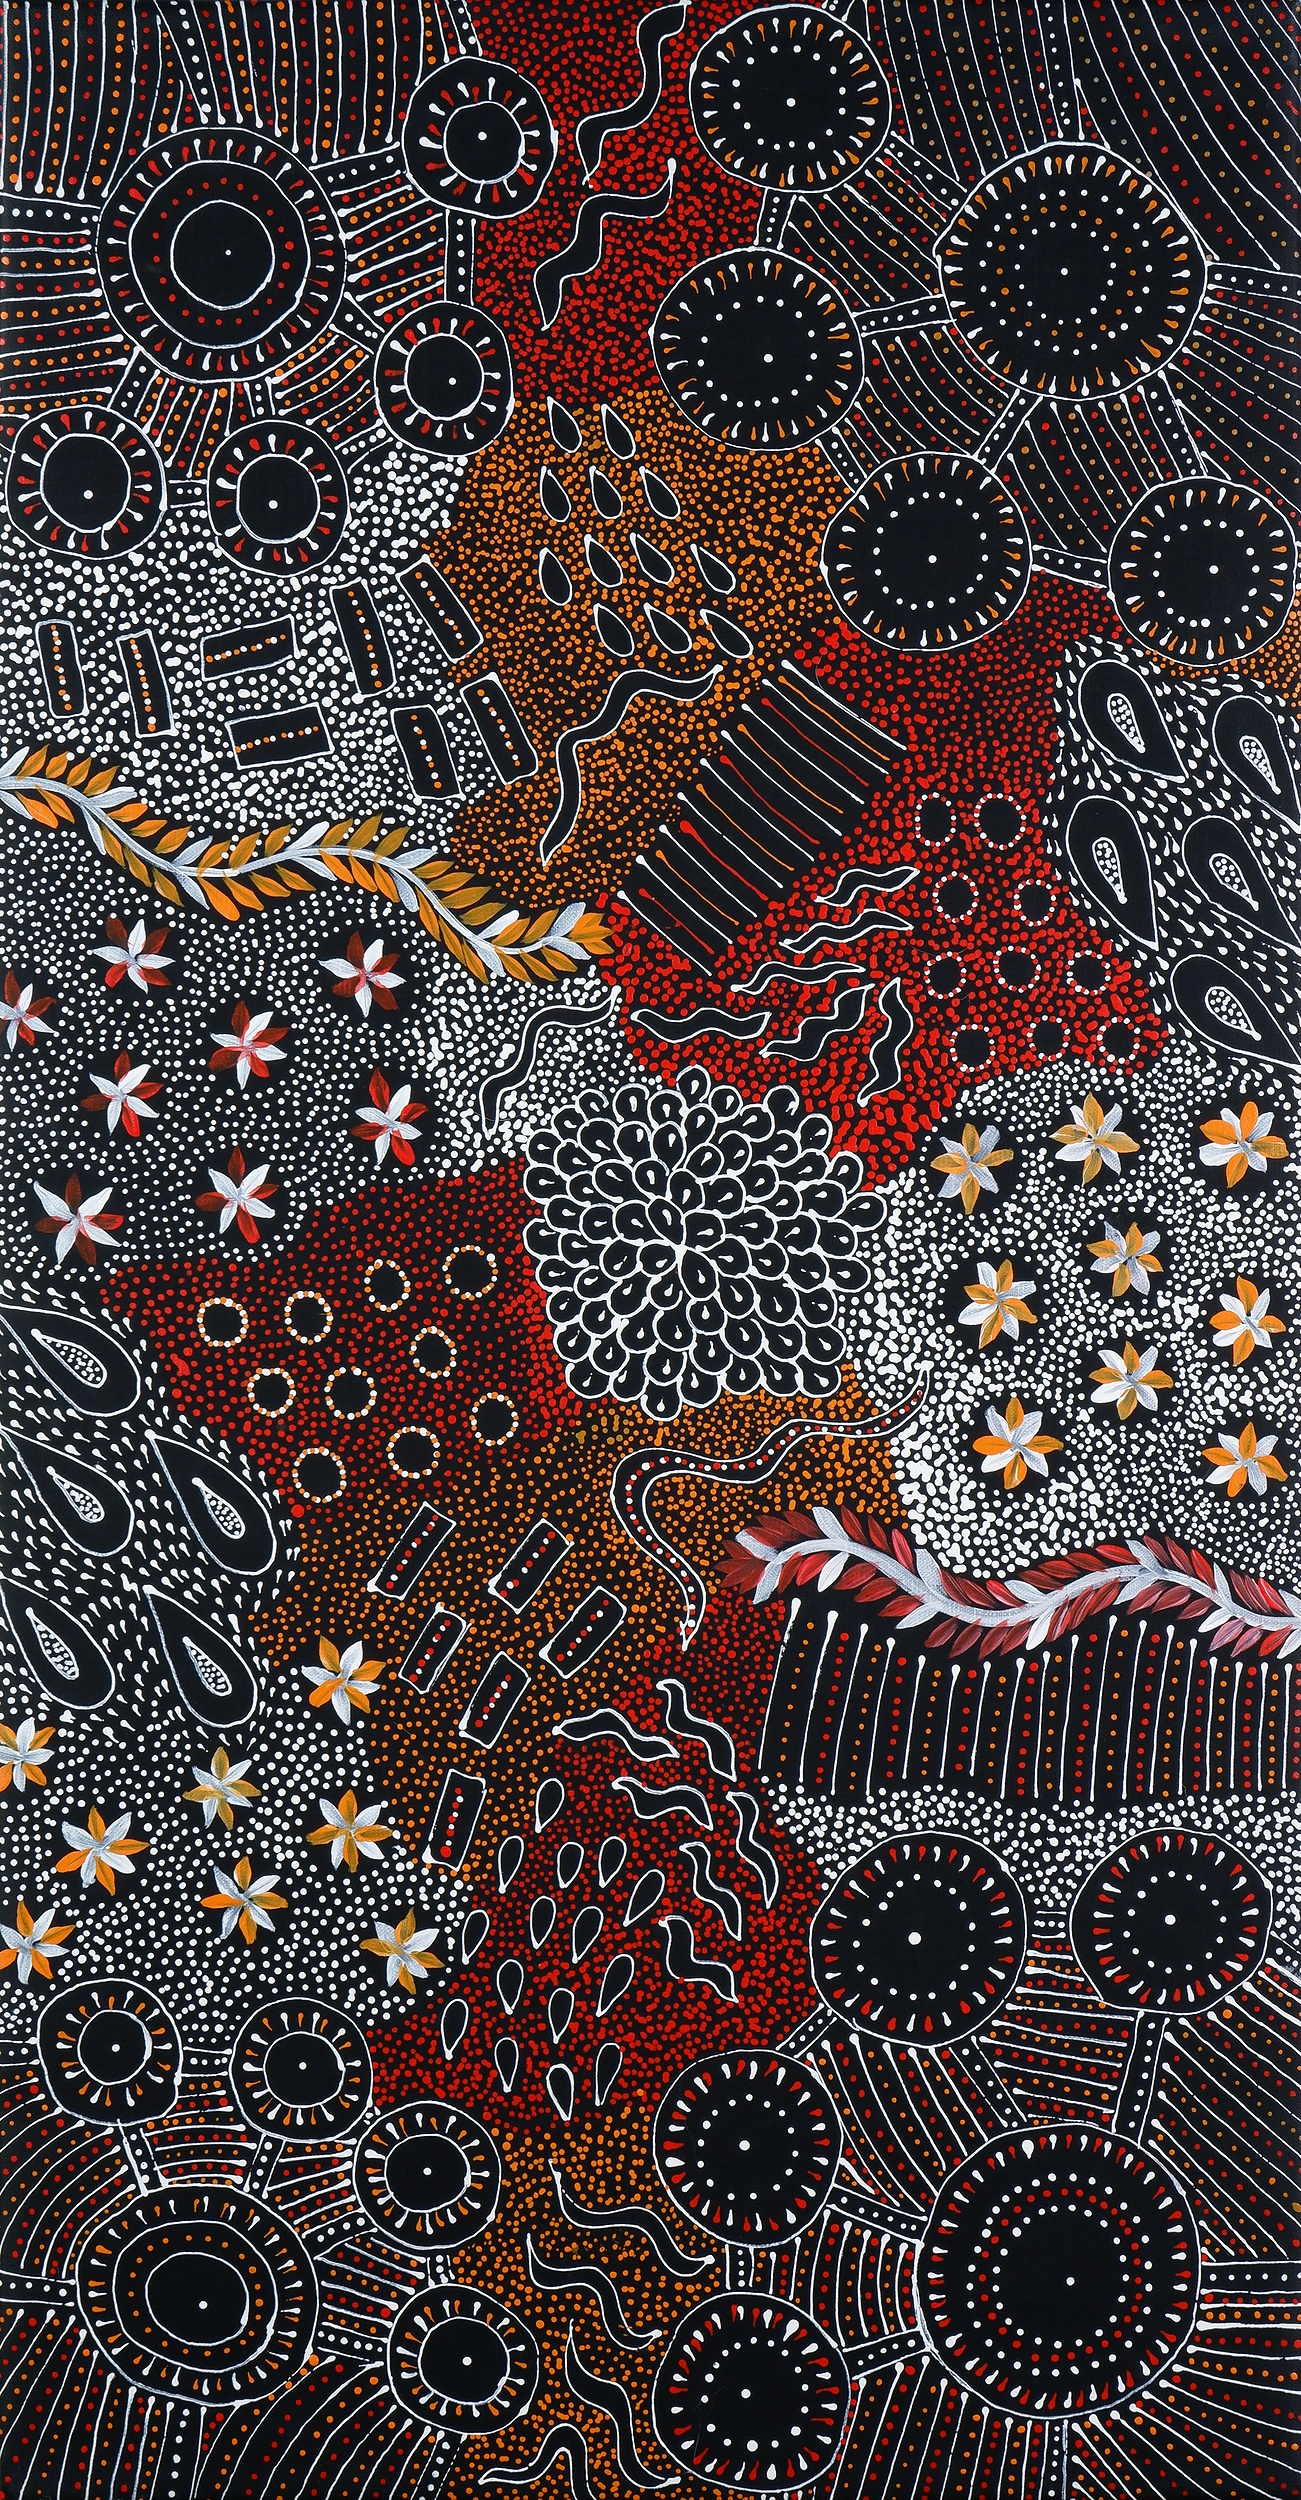 'Naomi Price Pula (Anmatyerre language group), My Country 2019, Synthetic Polymer Paint on Canvas, 96 x 51 cm'